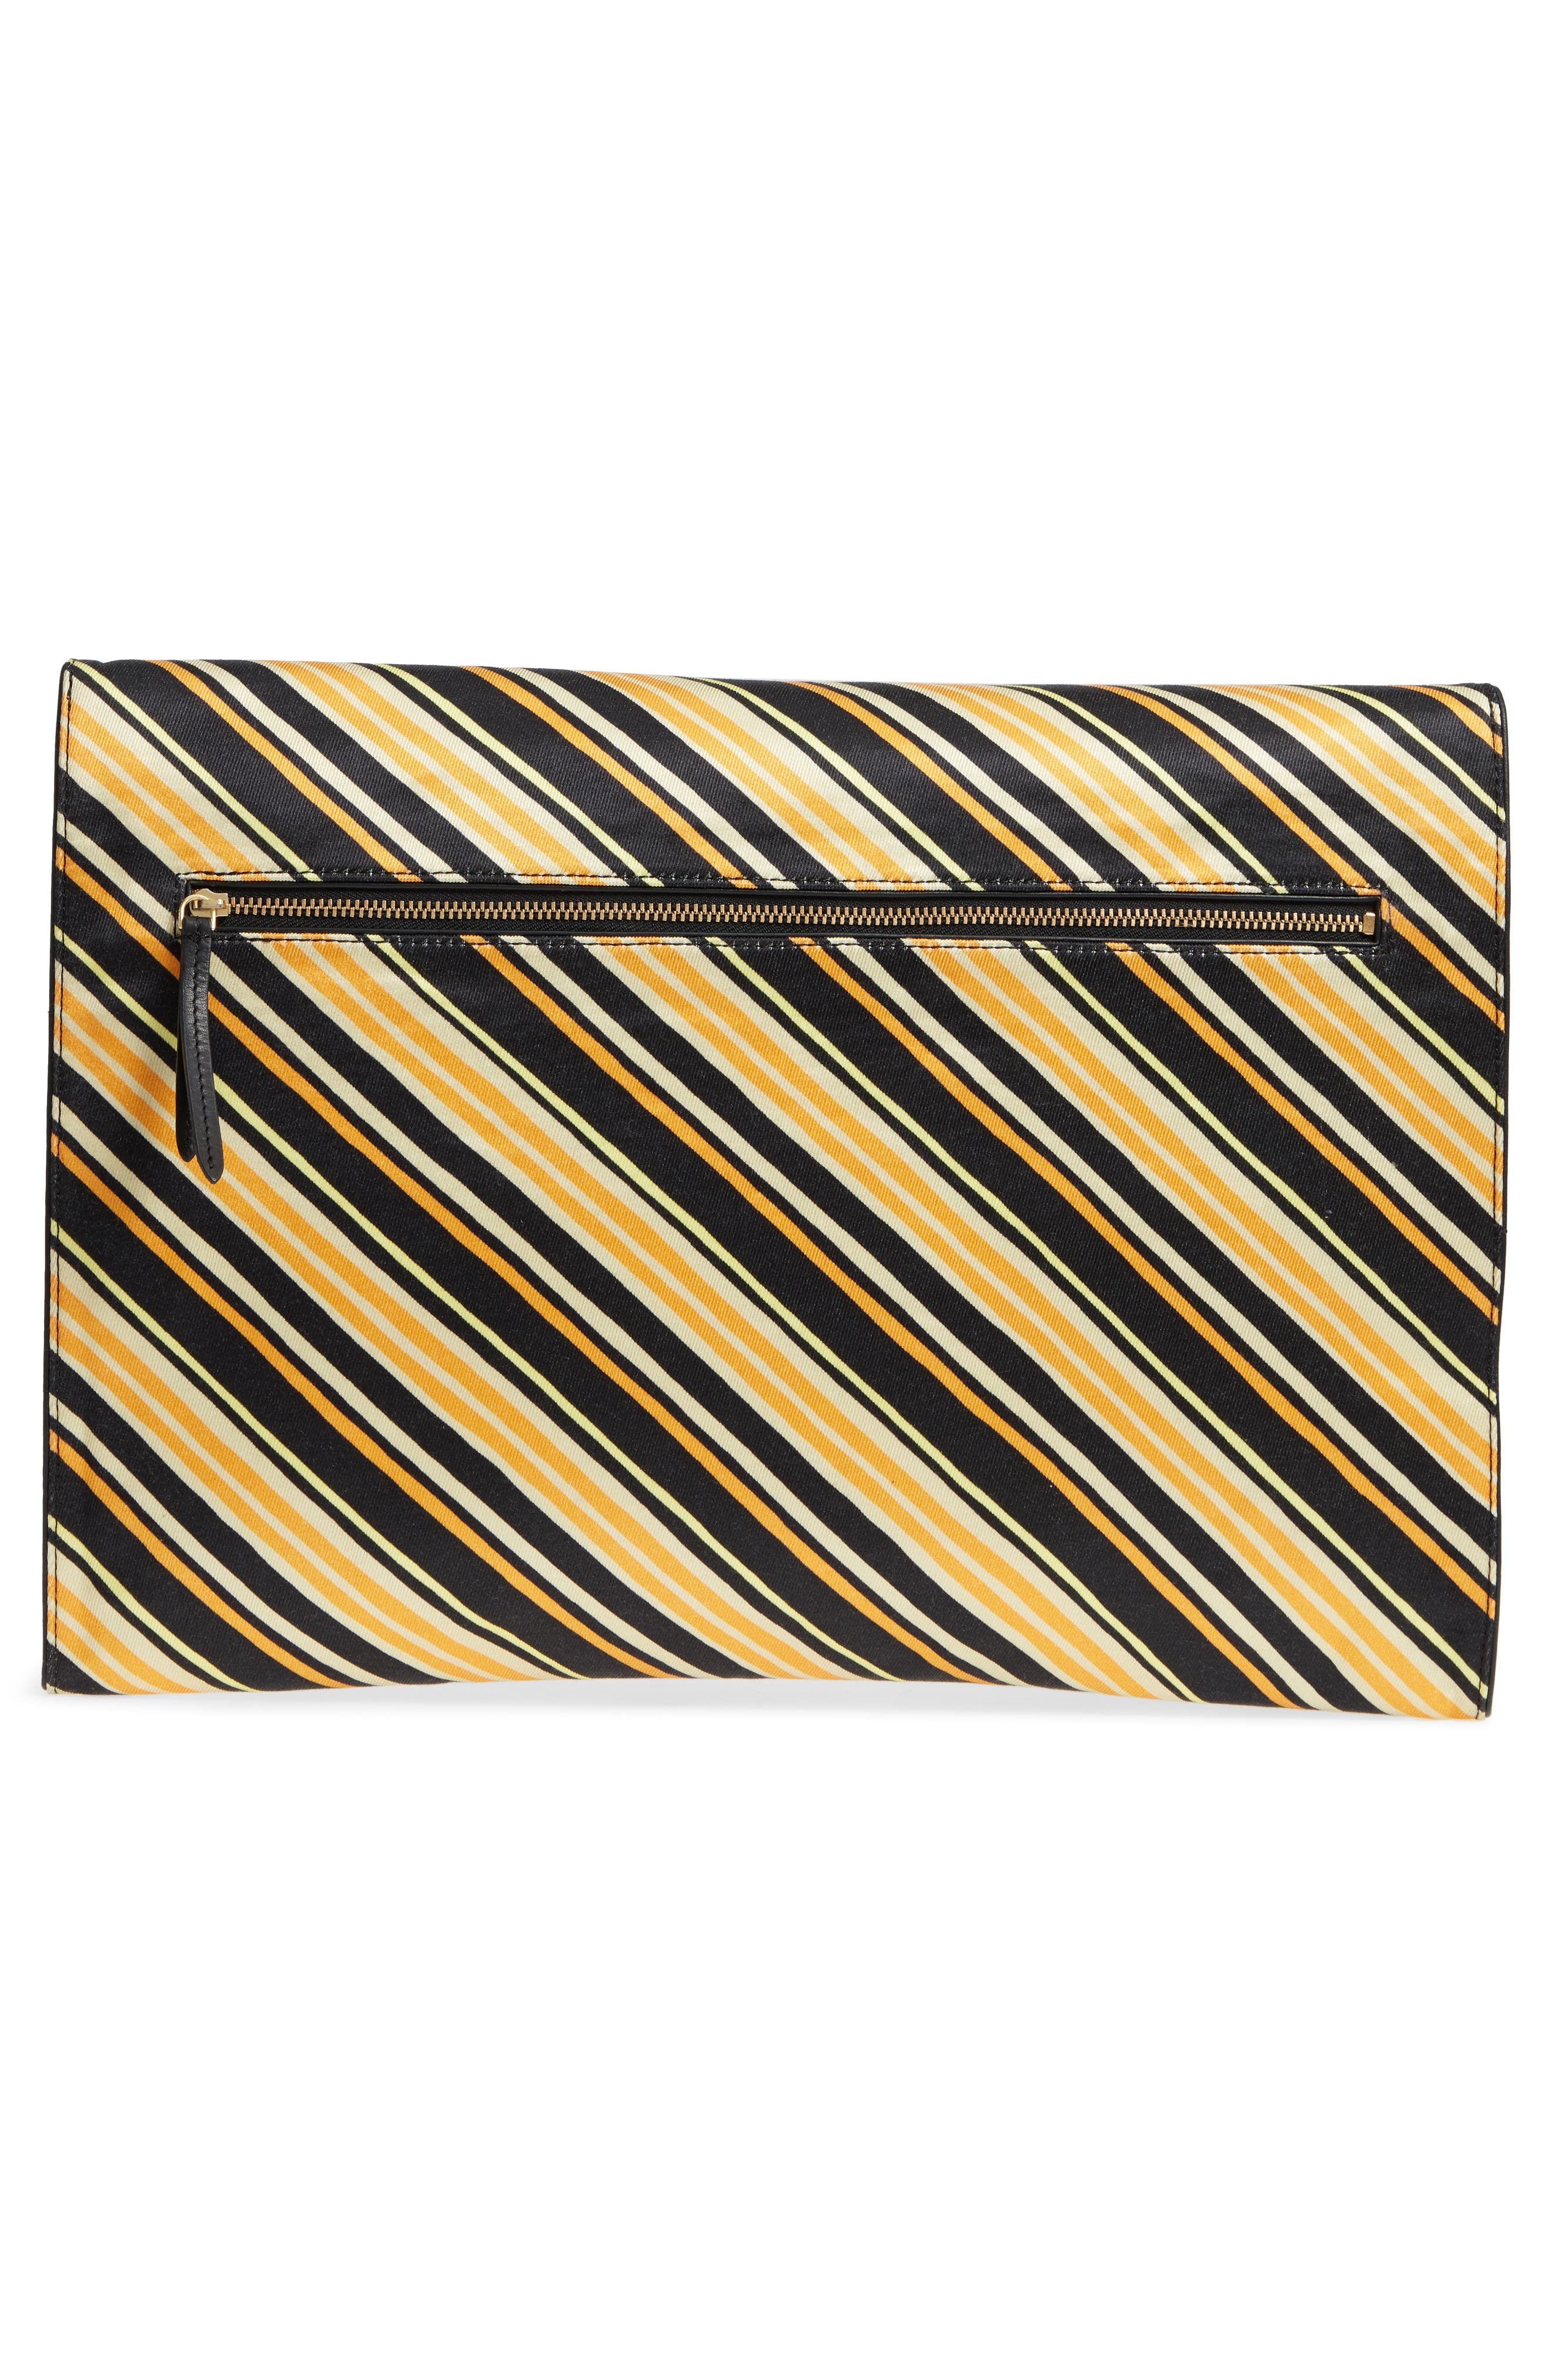 DRIES VAN NOTEN, Stripe Canvas Large Canvas Envelope Clutch, Alternate thumbnail 3, color, 001